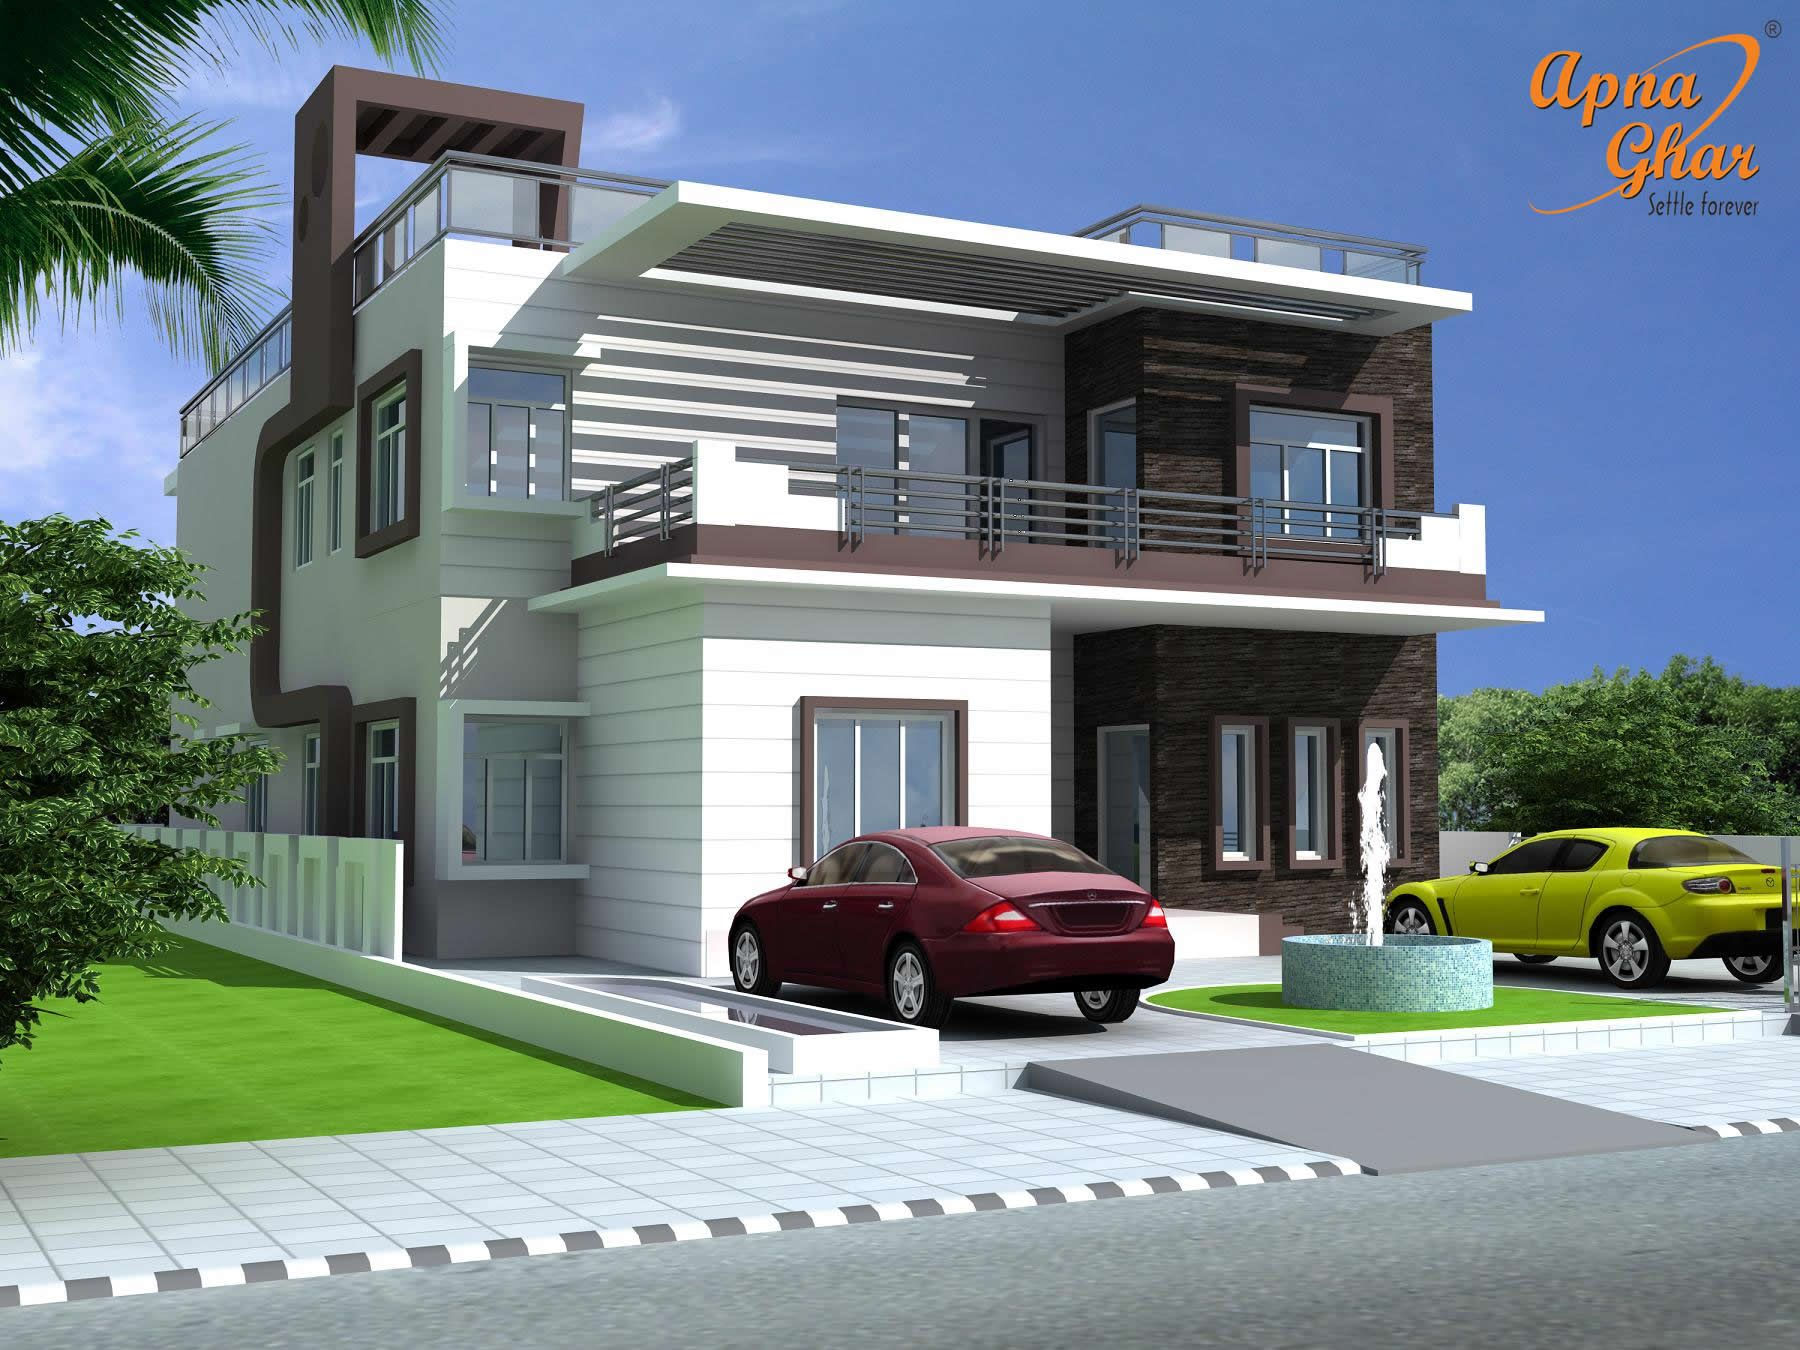 6 bedrooms duplex house design in 390m2 13m x 30m click for Duplex home plan design